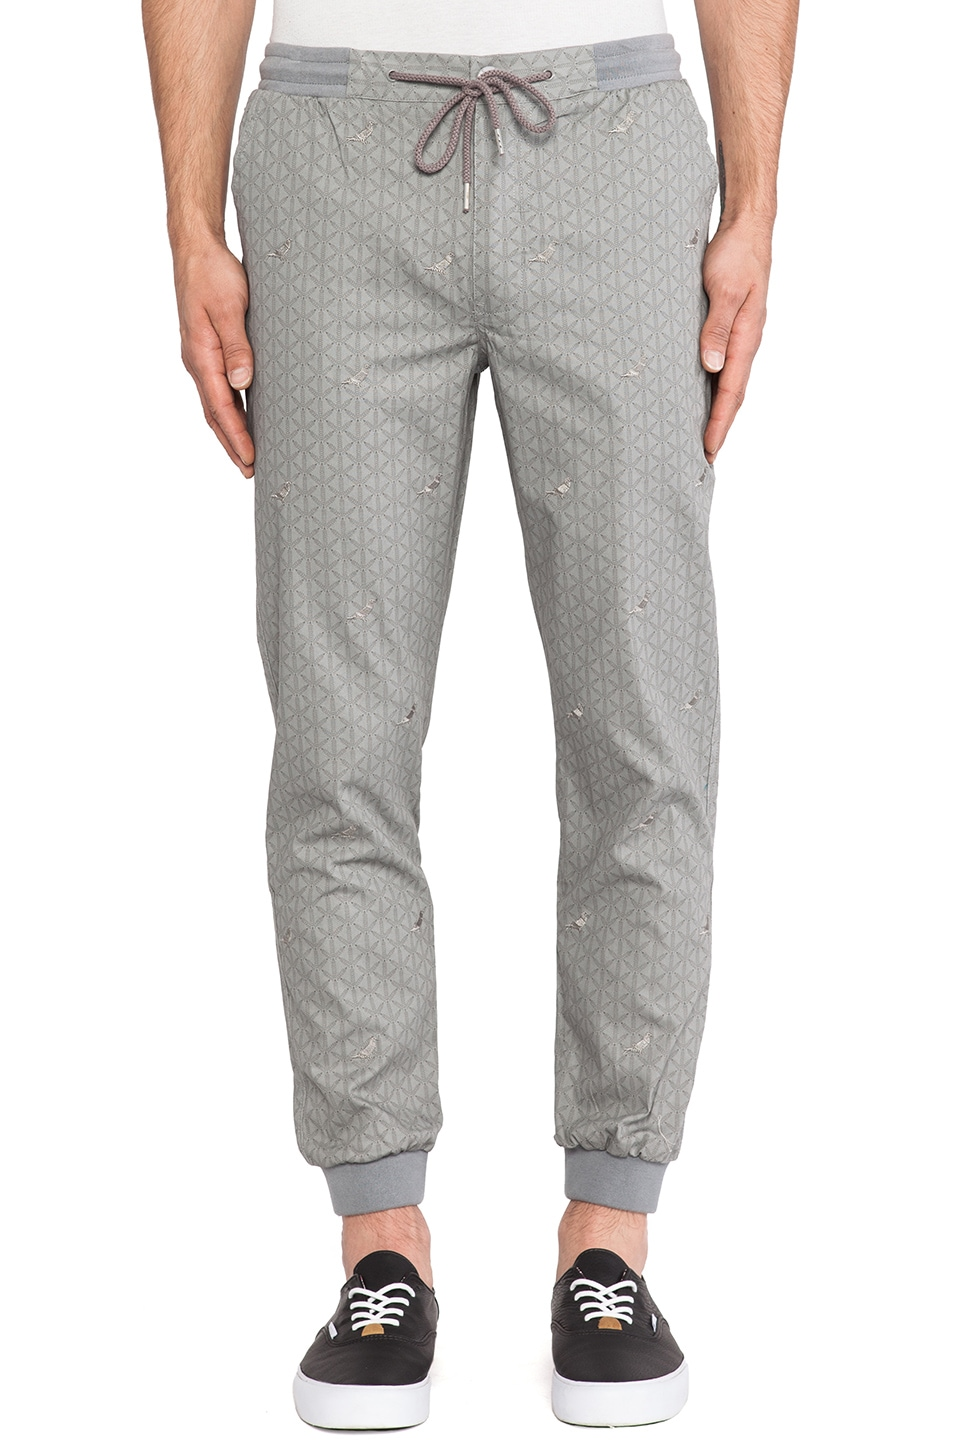 Staple Pigeon Lux Cuff Pant in Grey